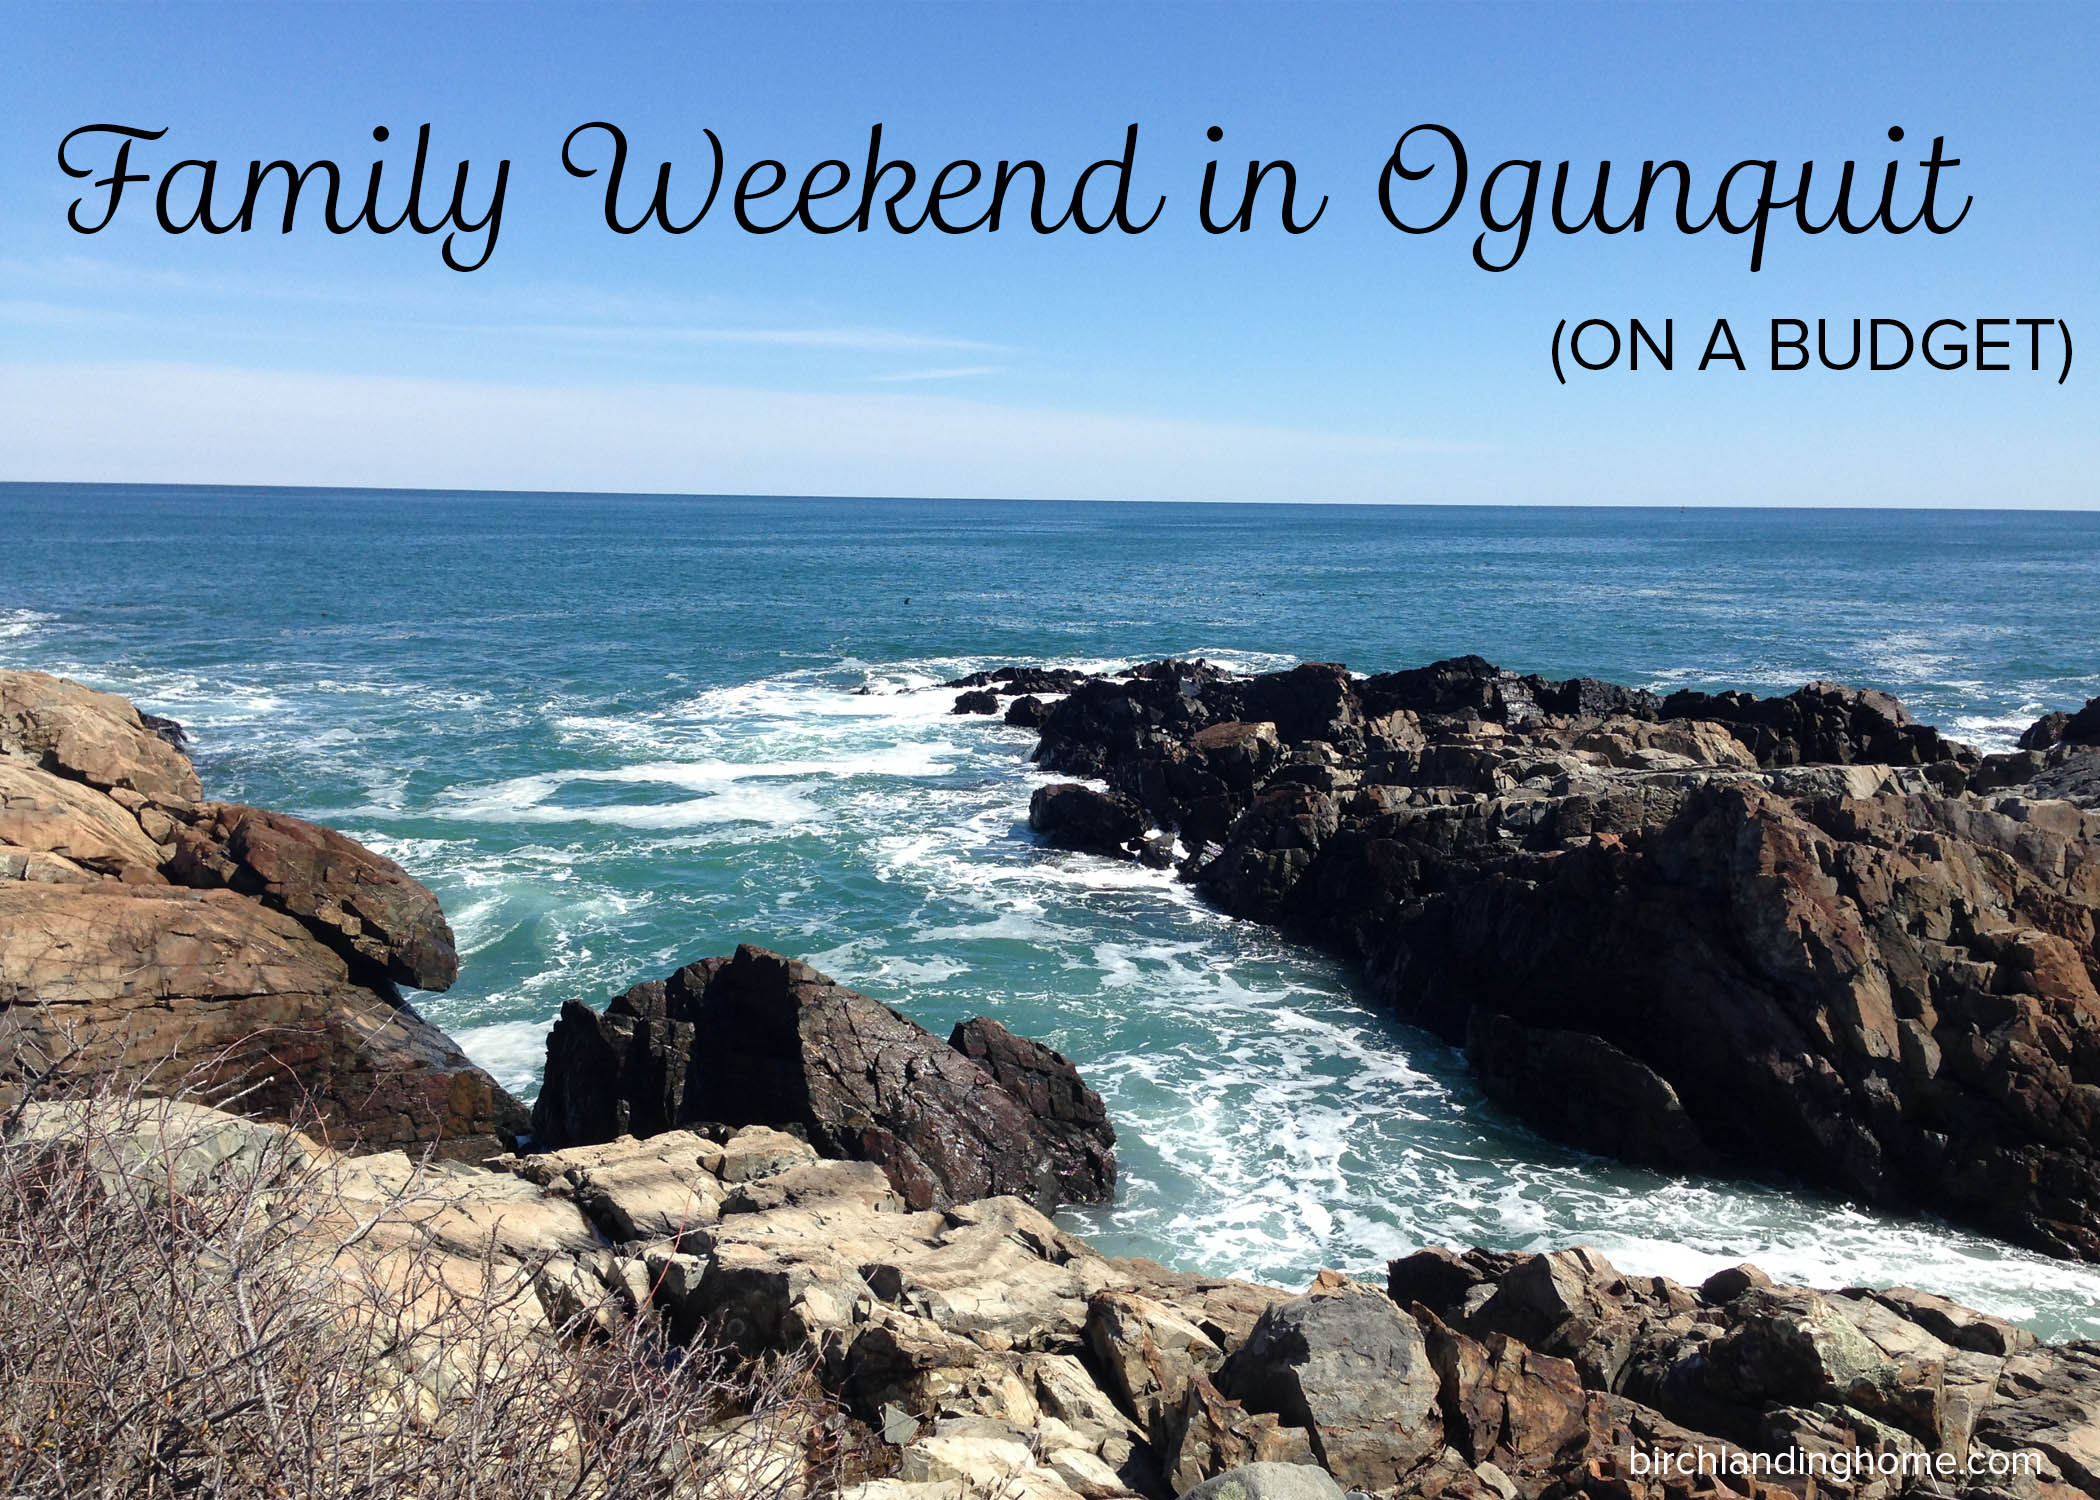 Family Weekend in Ogunquit Maine on a Budget by Birch Landing Home